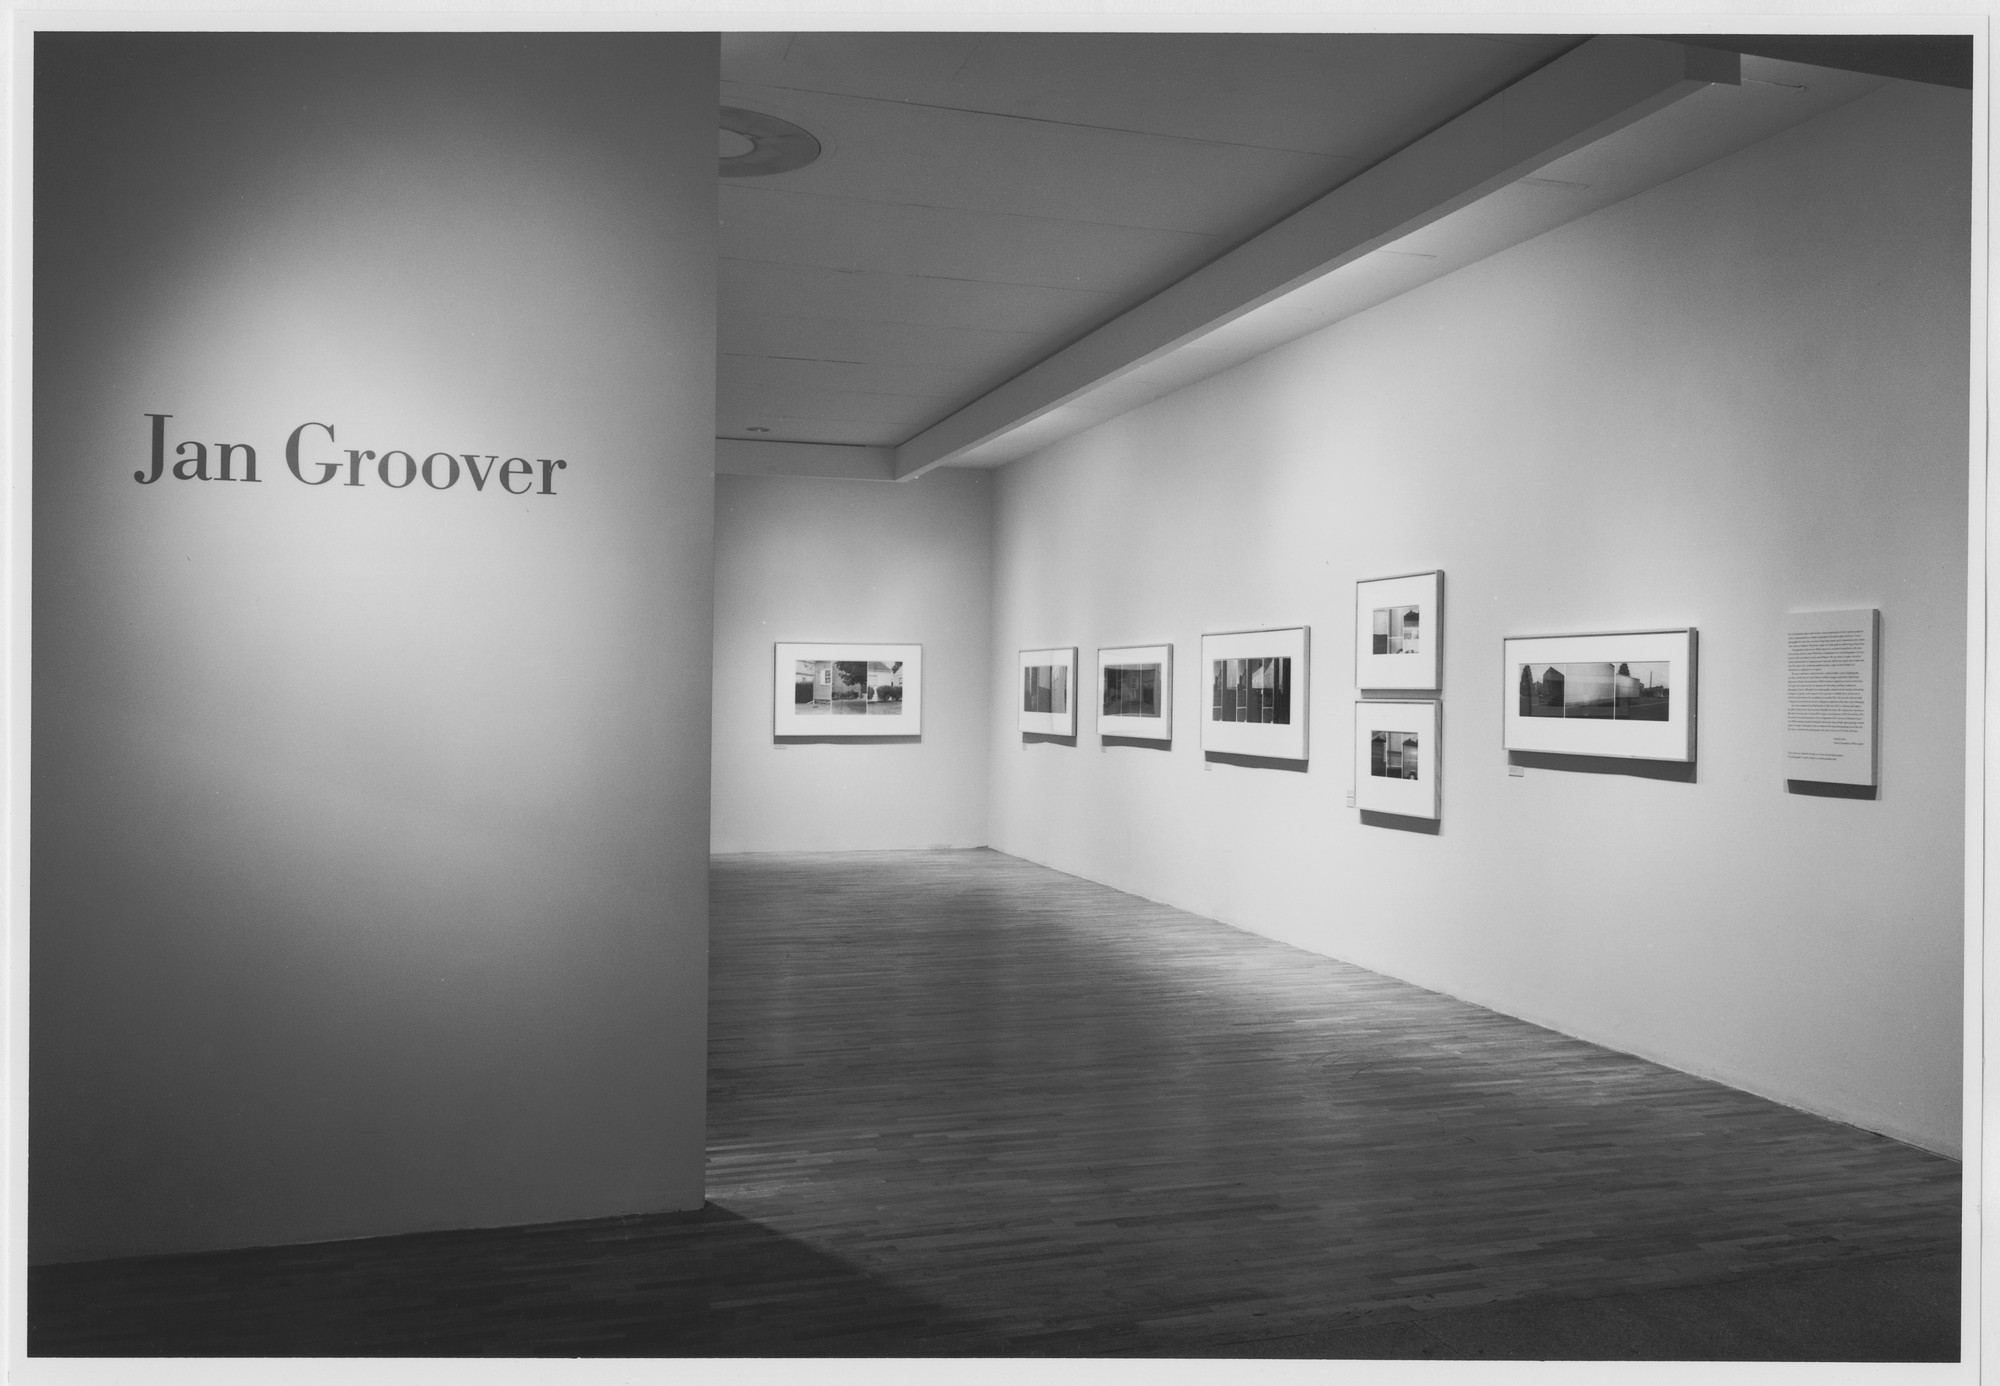 "Installation view of the exhibition, ""Jan Groover"" March 5, 1987–June 2, 1987. Photographic Archive. The Museum of Modern Art Archives, New York. IN1441.1. Photograph by Mali Olatunji."